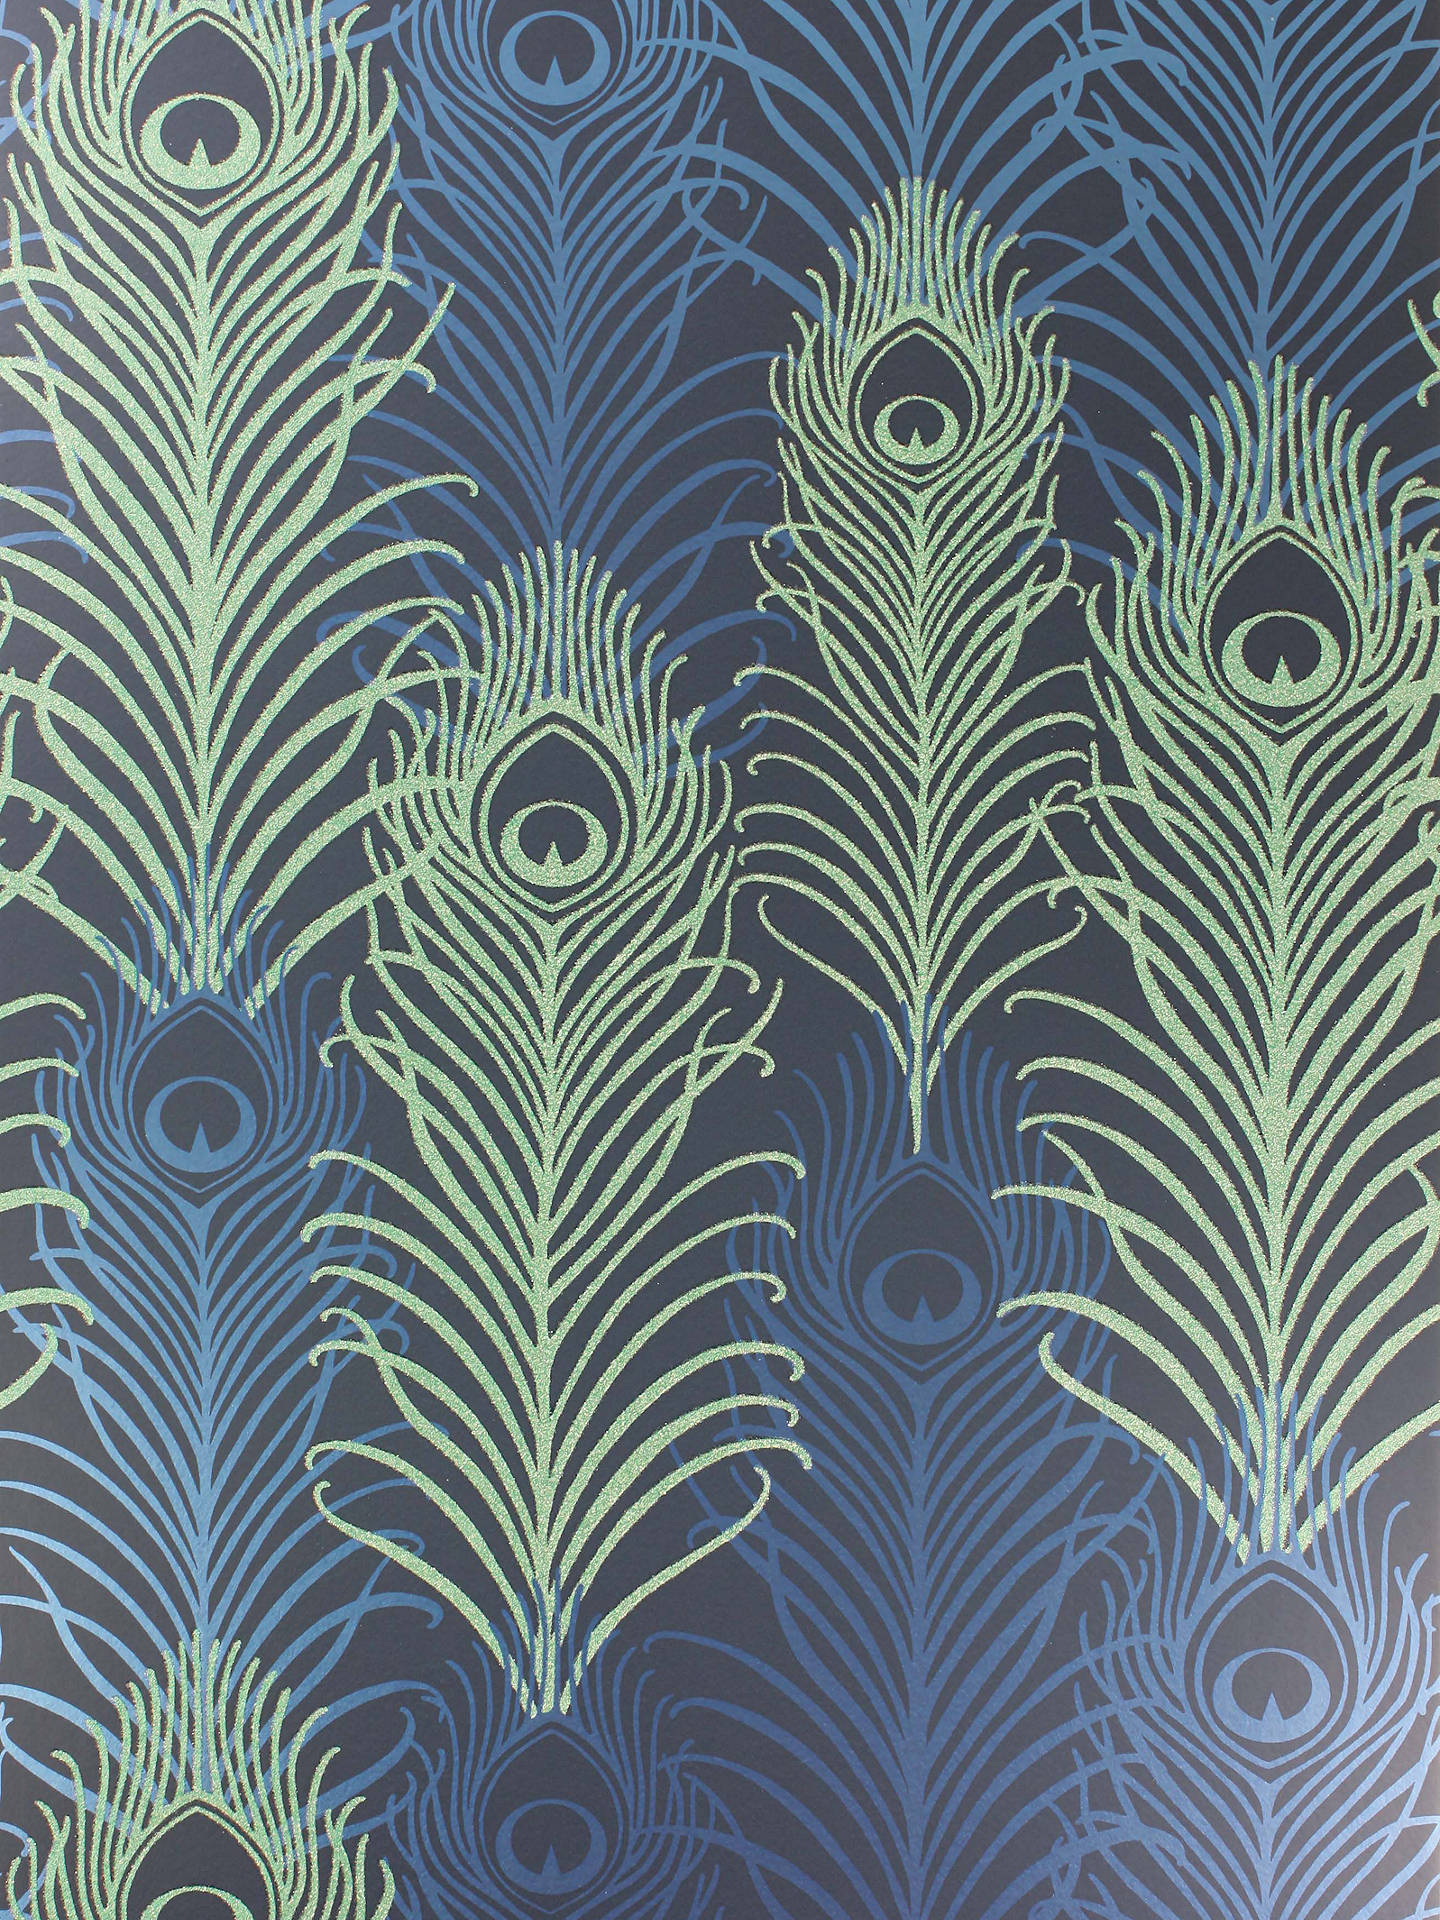 Buy Matthew Williamson Peacock Wallpaper, Jade / Metallic Cobalt, W6541-01 Online at johnlewis.com